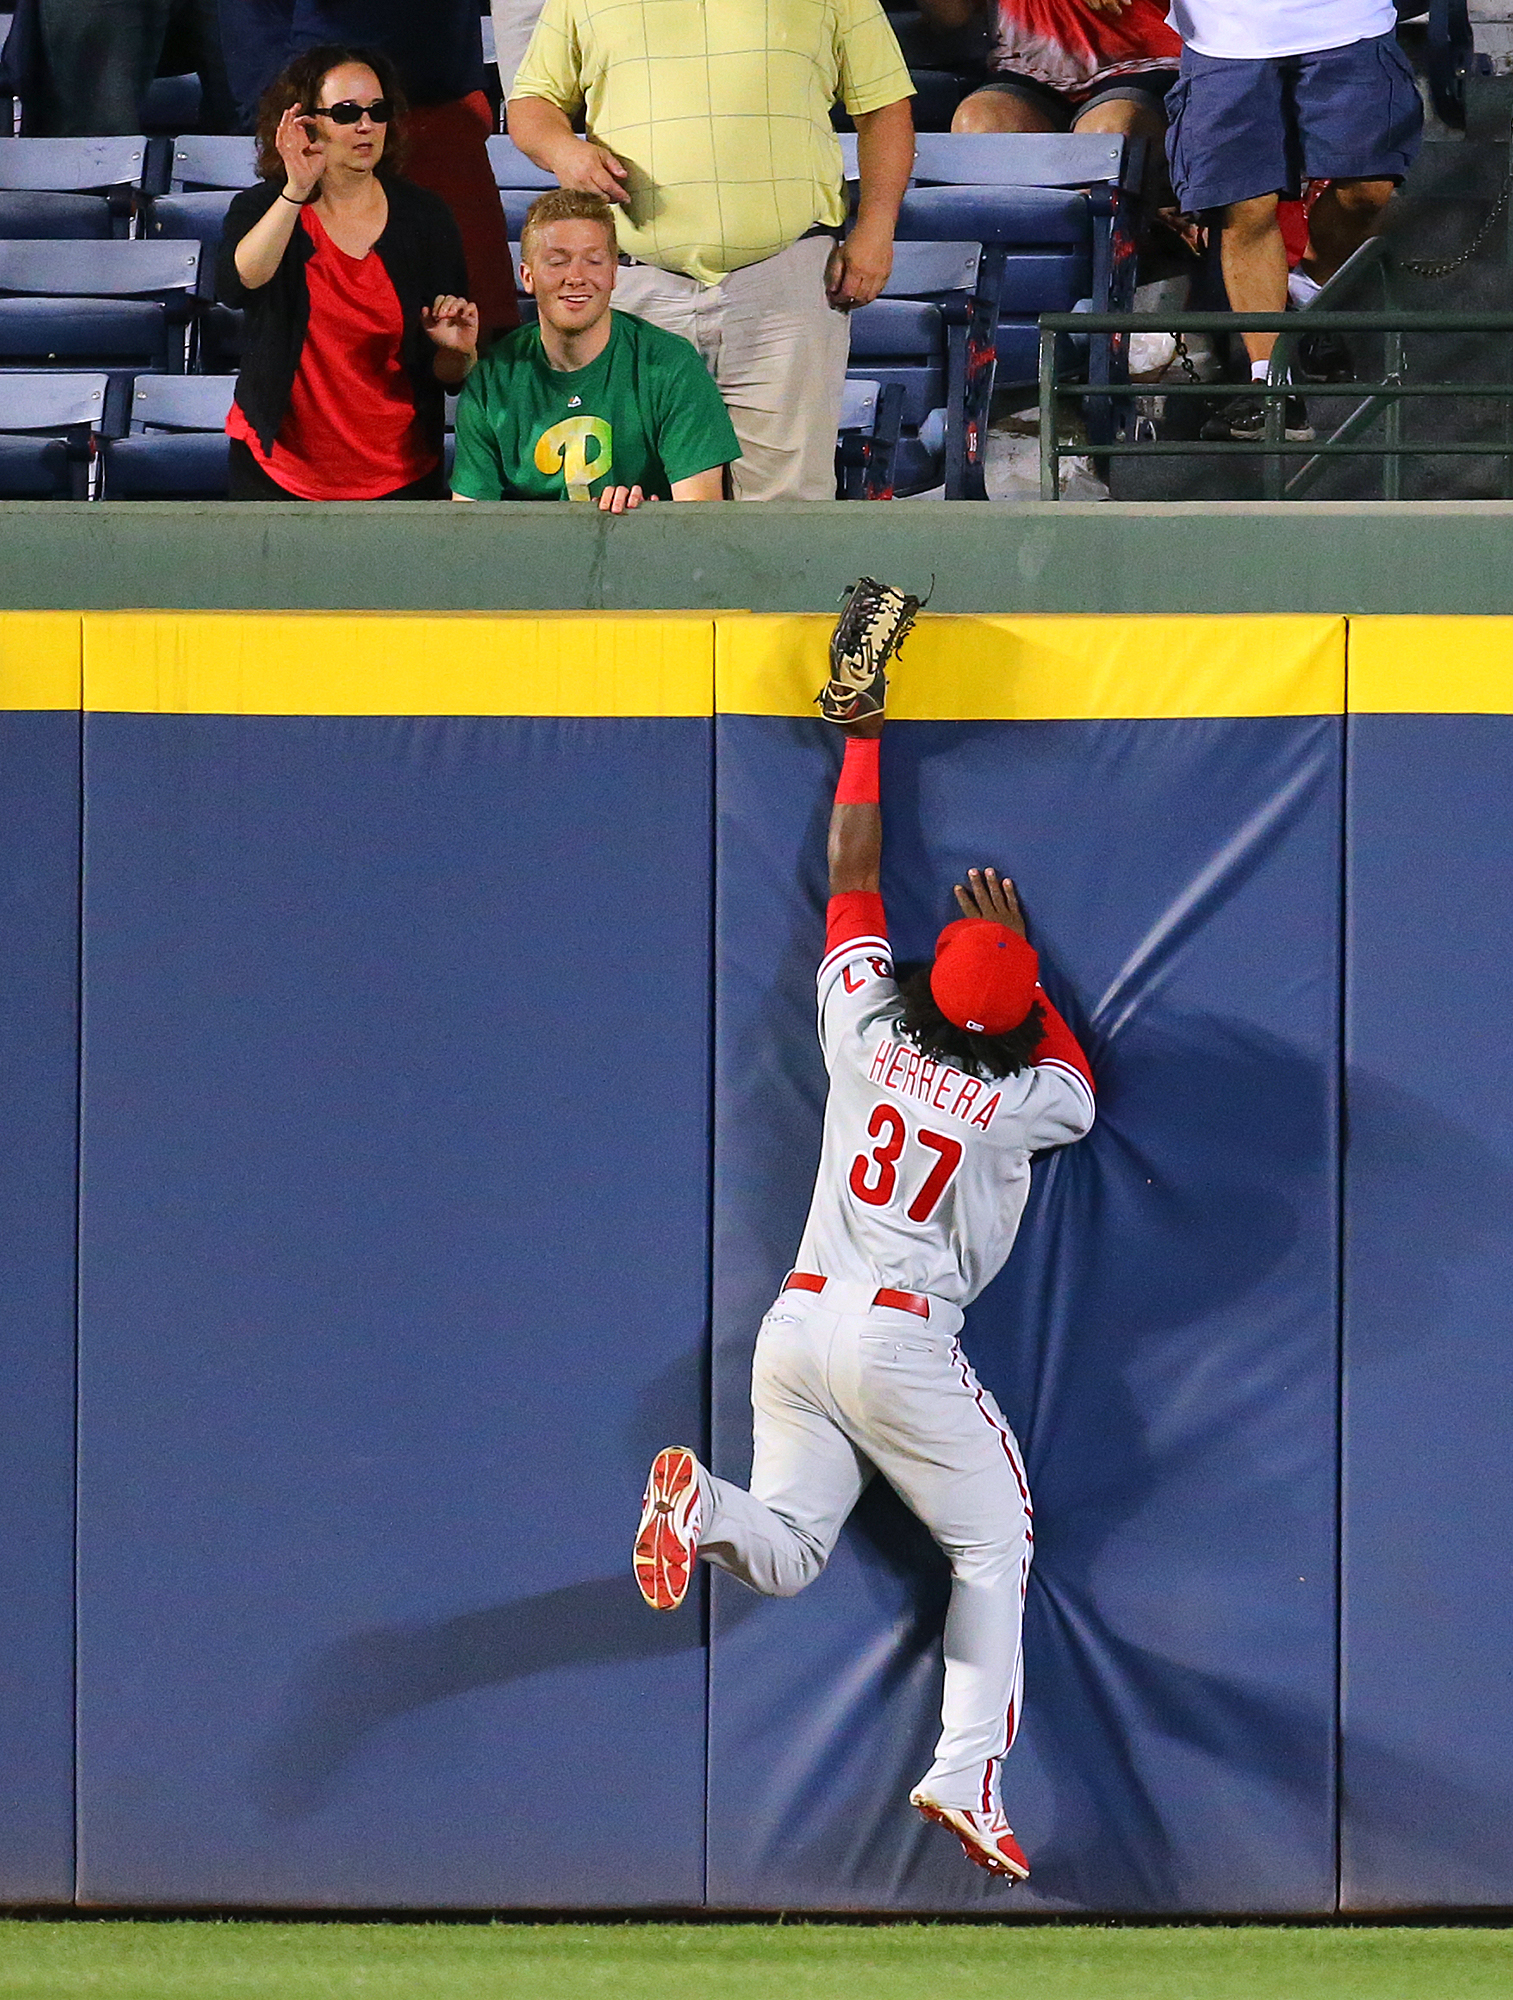 Philadelphia Phillies outfielder Odubel Herrera robs Atlanta Braves Jonny Gomes by catching the ball as he hits the wall during the sixth inning of a baseball game on Monday, May 4, 2015, in Atlanta. Curtis Compton(/Atlanta Journal-Constitution via AP)  M